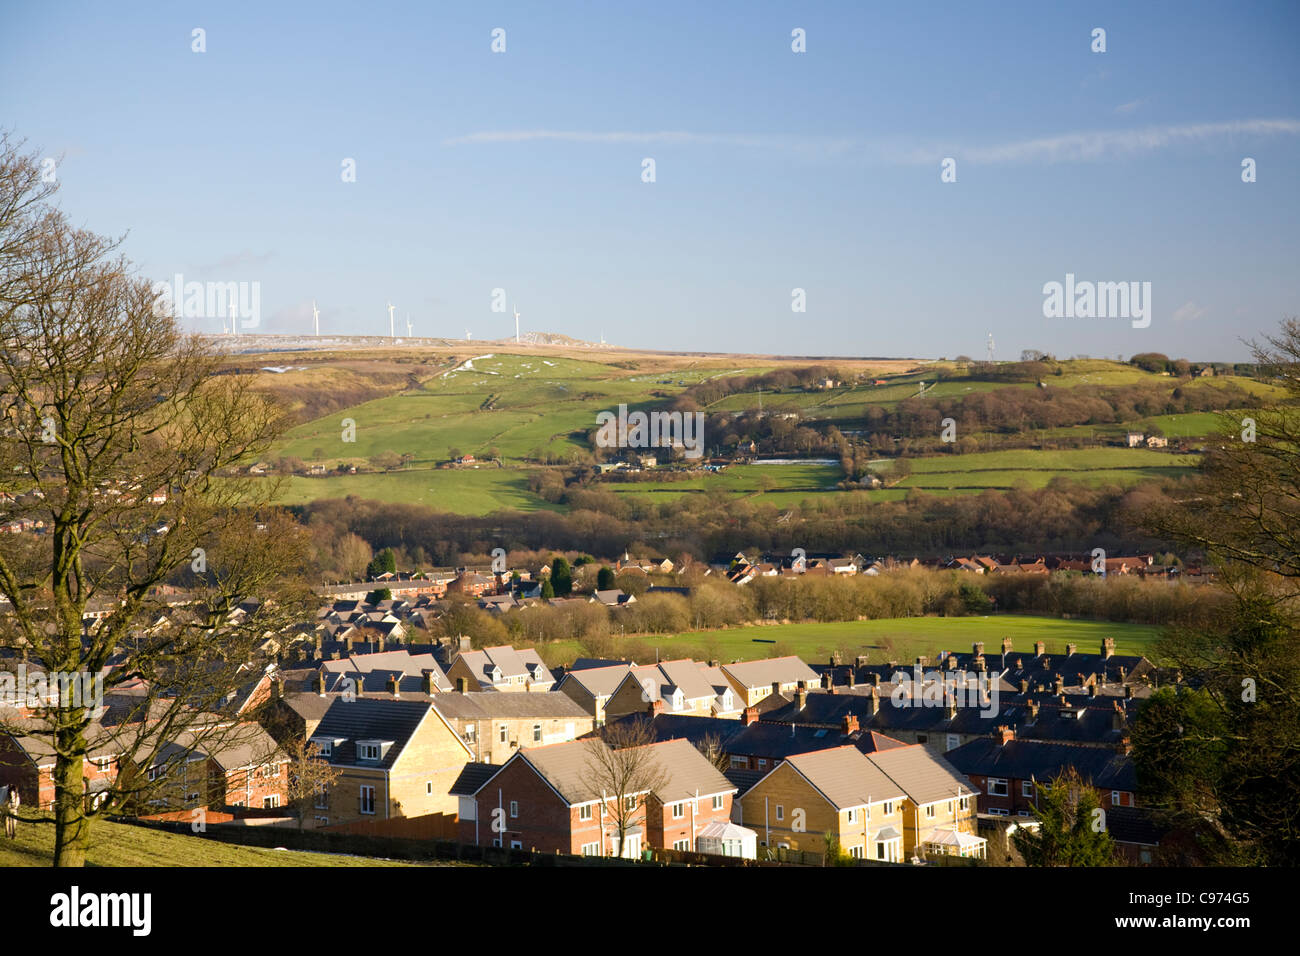 lancashire landscape around ramsbottom and holcombe in the west pennine hills,england - Stock Image